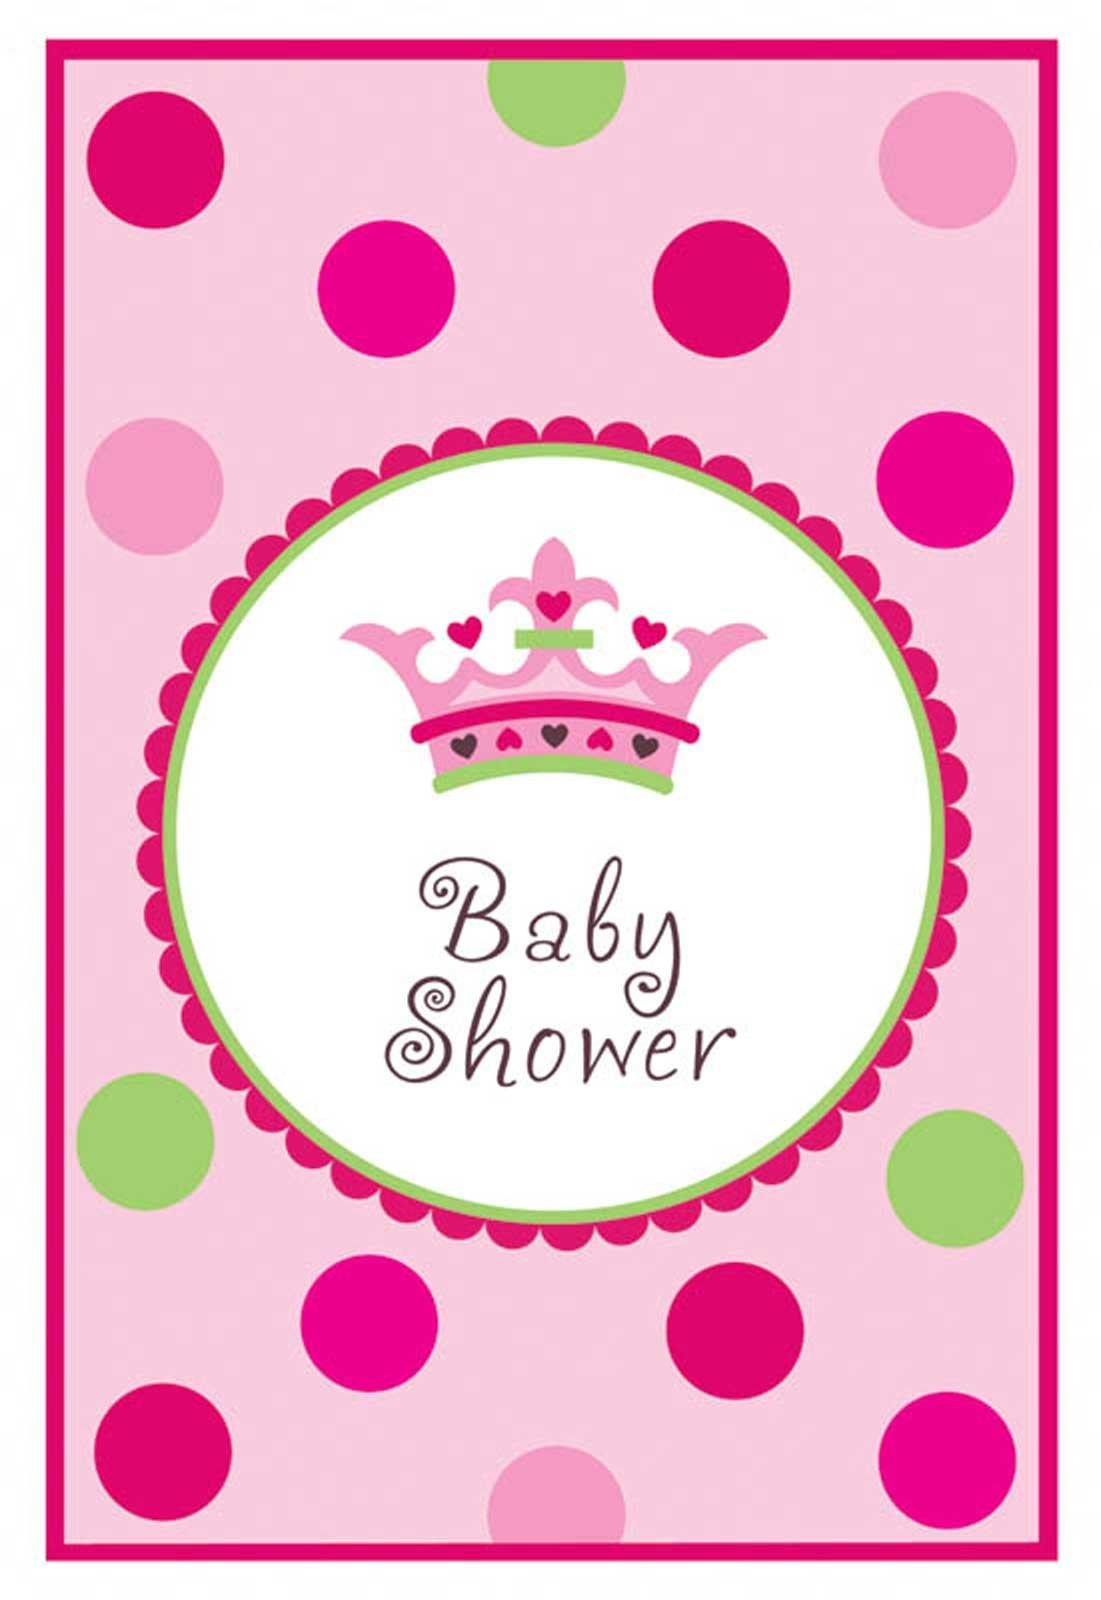 Photo : Princess Baby Shower Invitations Image - Free Printable Princess Baby Shower Invitations